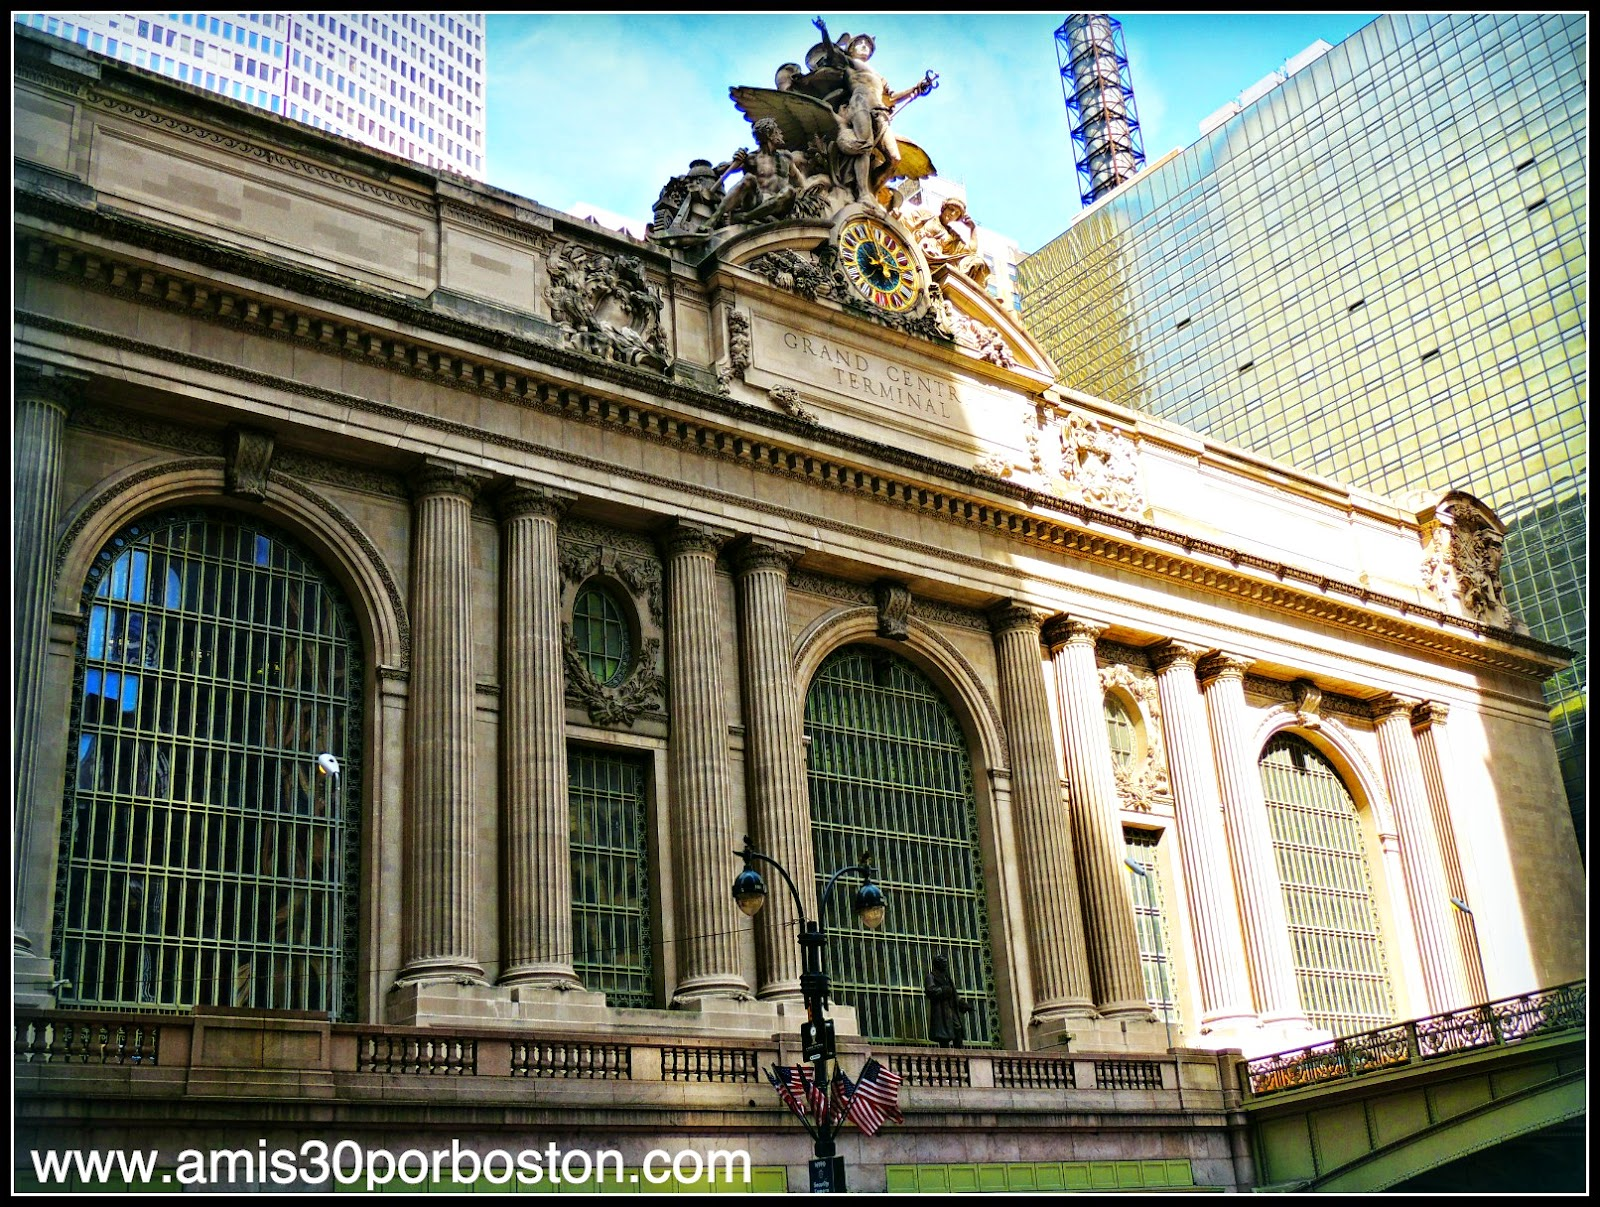 Fachada de la Grand Central Terminal de Nueva York